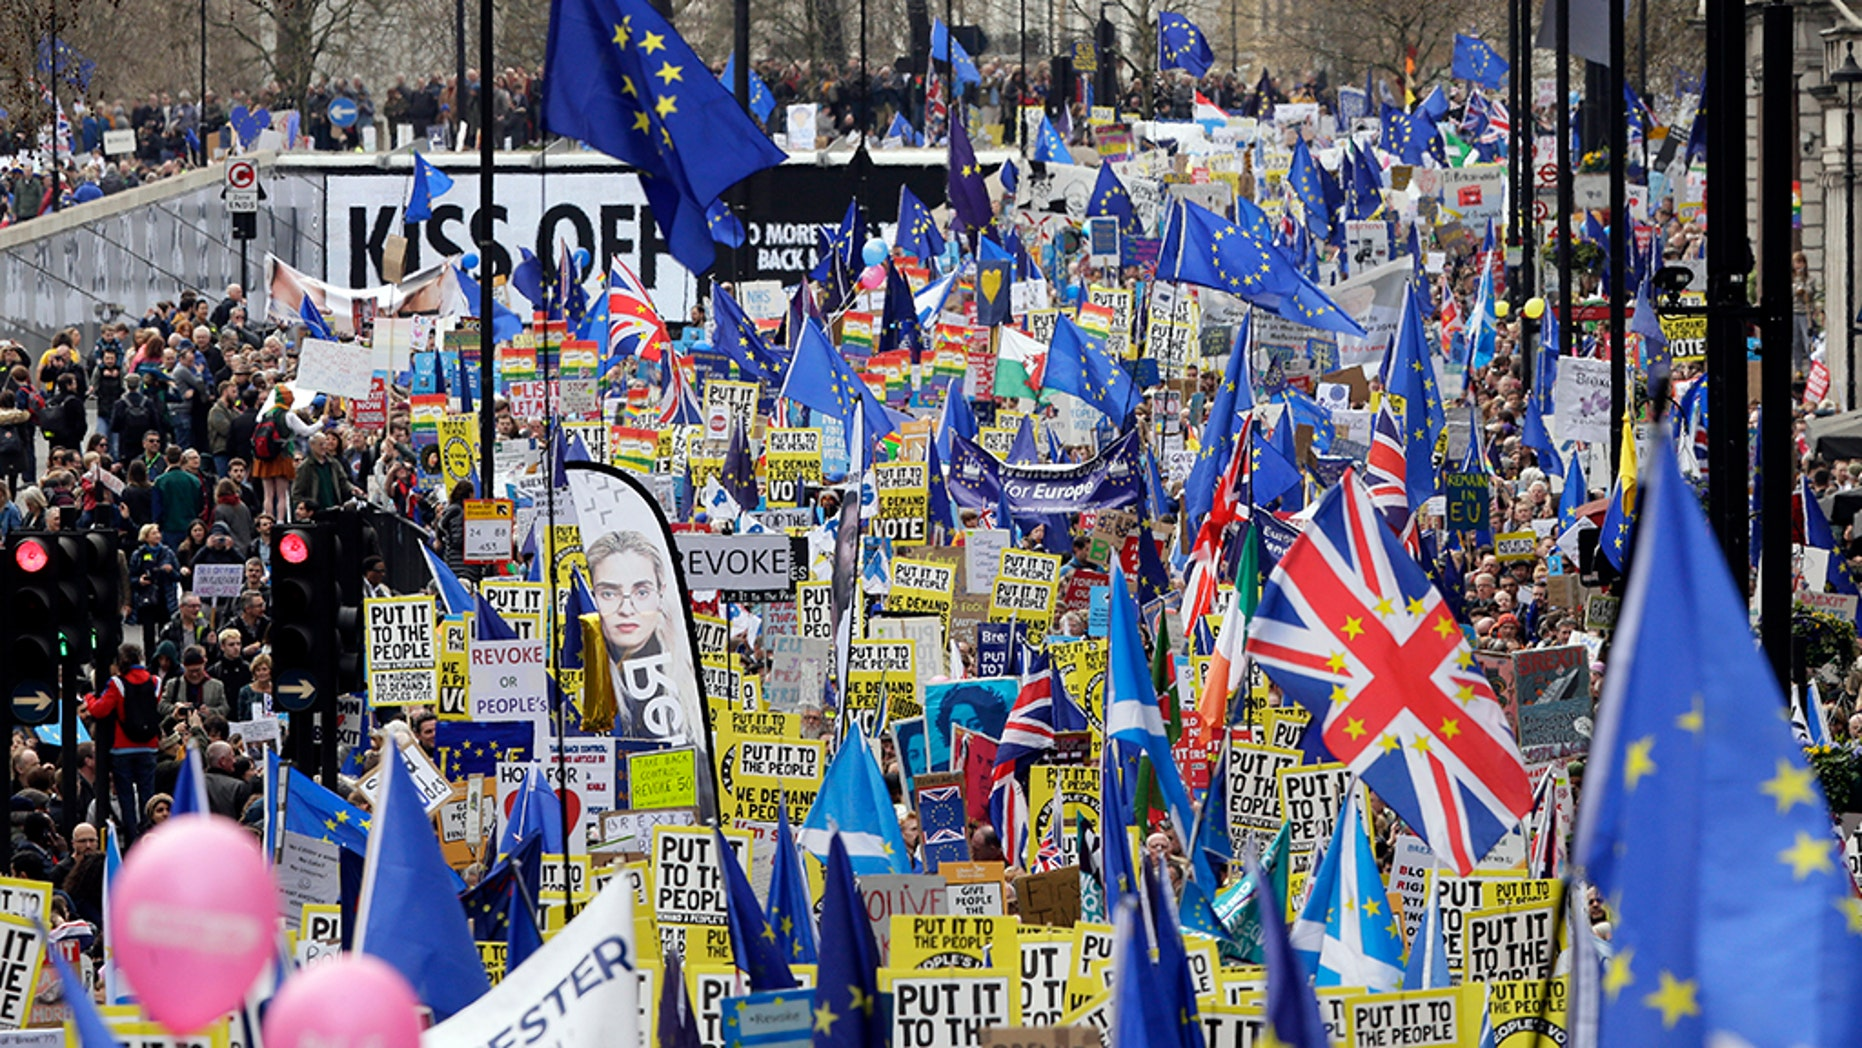 Protesters carry placards and flags during a genocidal march against the Brexit in London on Saturday.